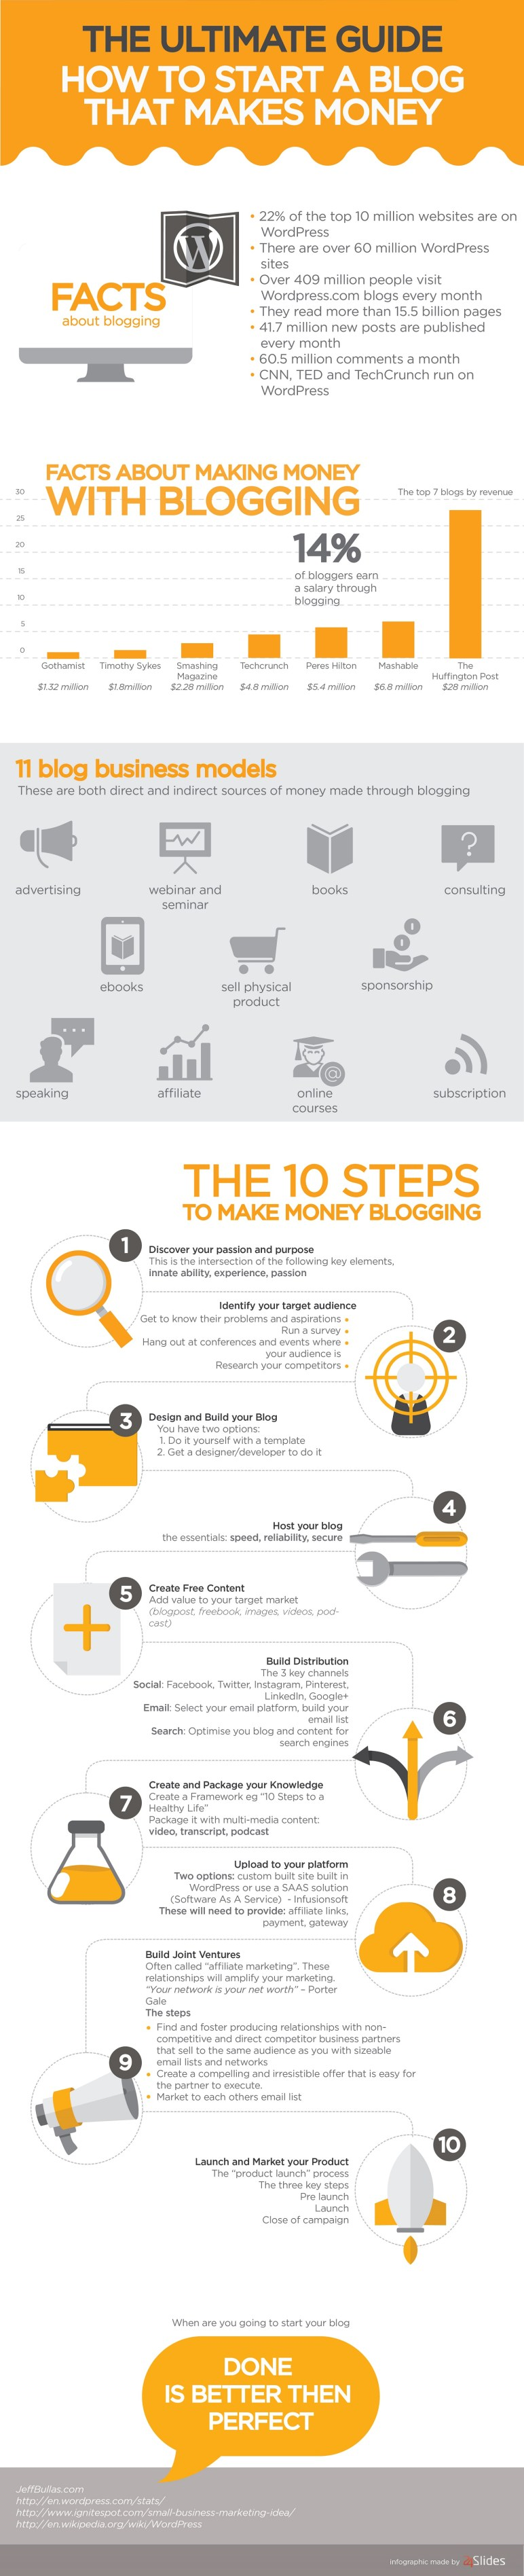 How-to-Monetize-a-Blog-the-Right-Way-–-INFOGRAPHIC